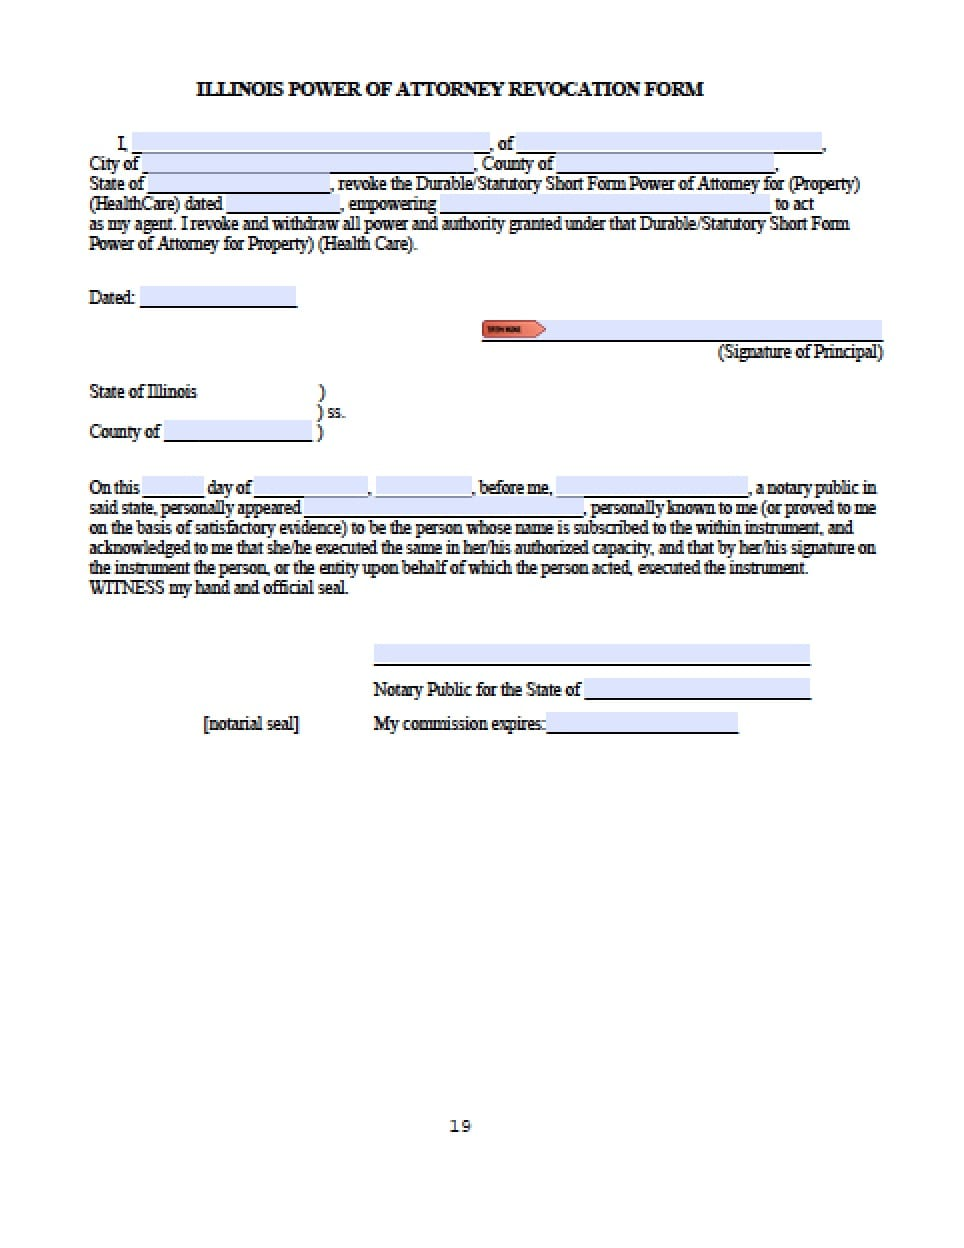 Illinois Revocation Power of Attorney Form - Power of Attorney ...